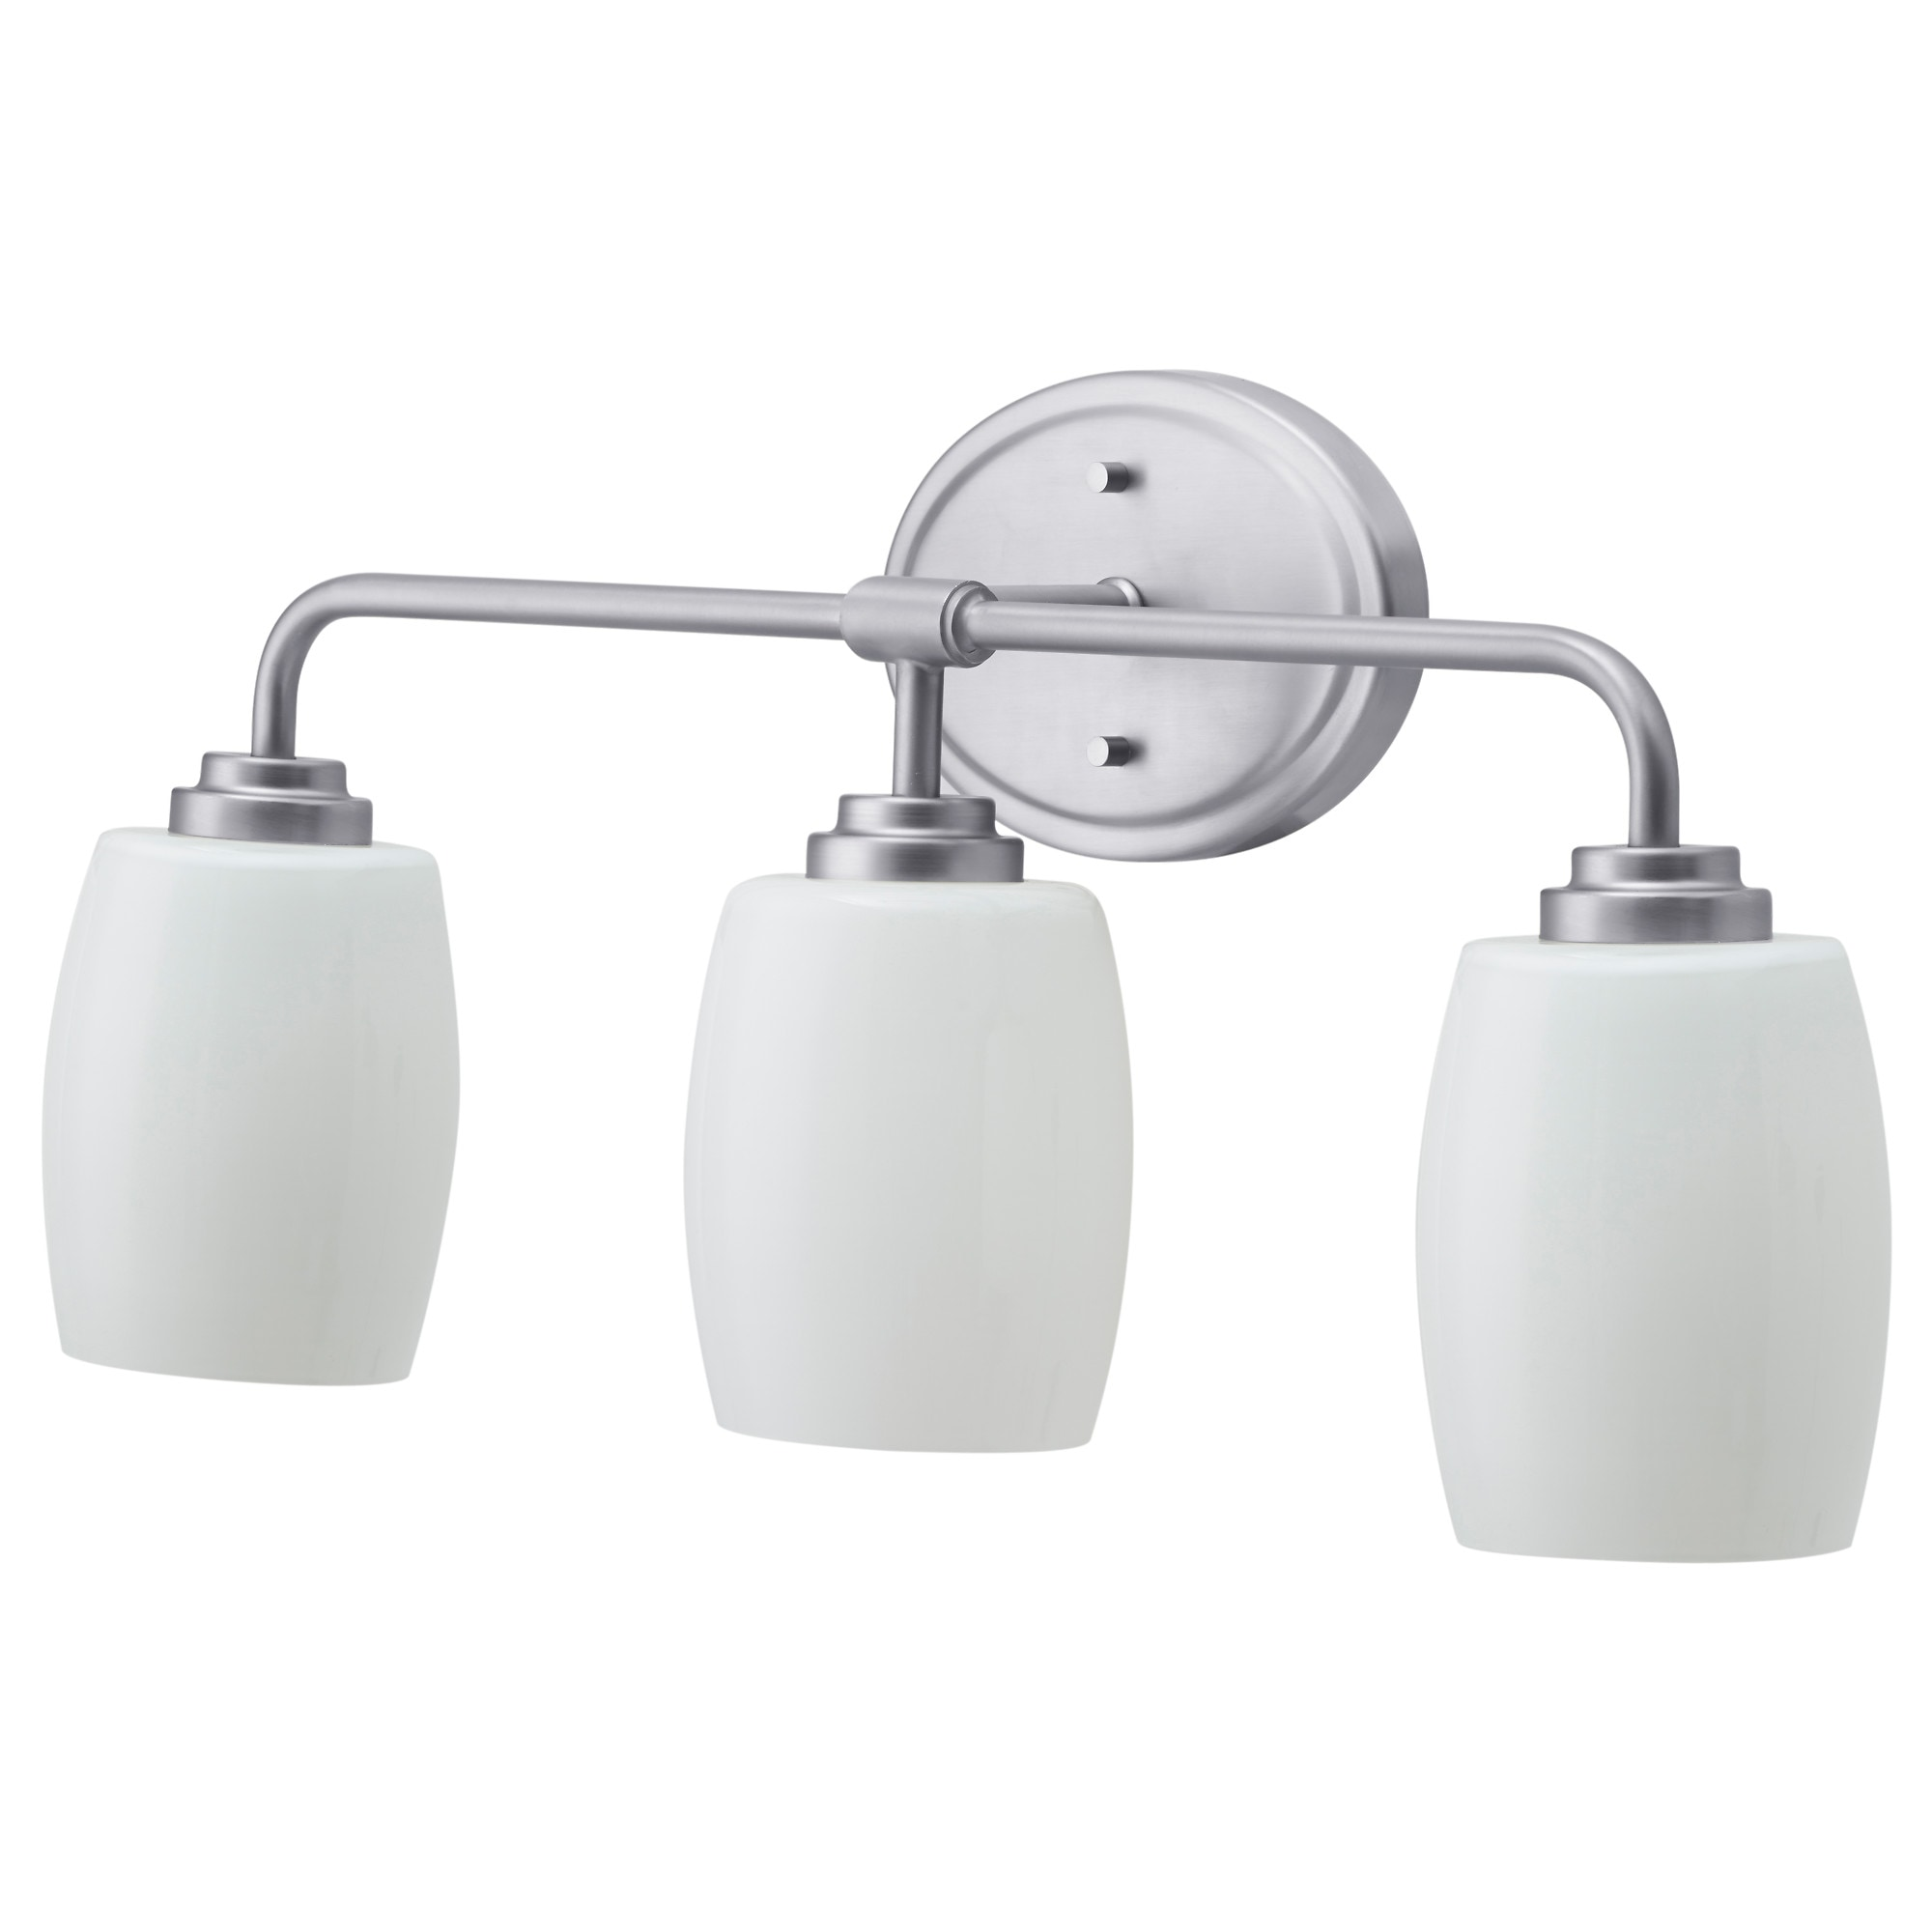 VALLMORA Wall Lamp Spots IKEA - Ikea bedroom light fixtures